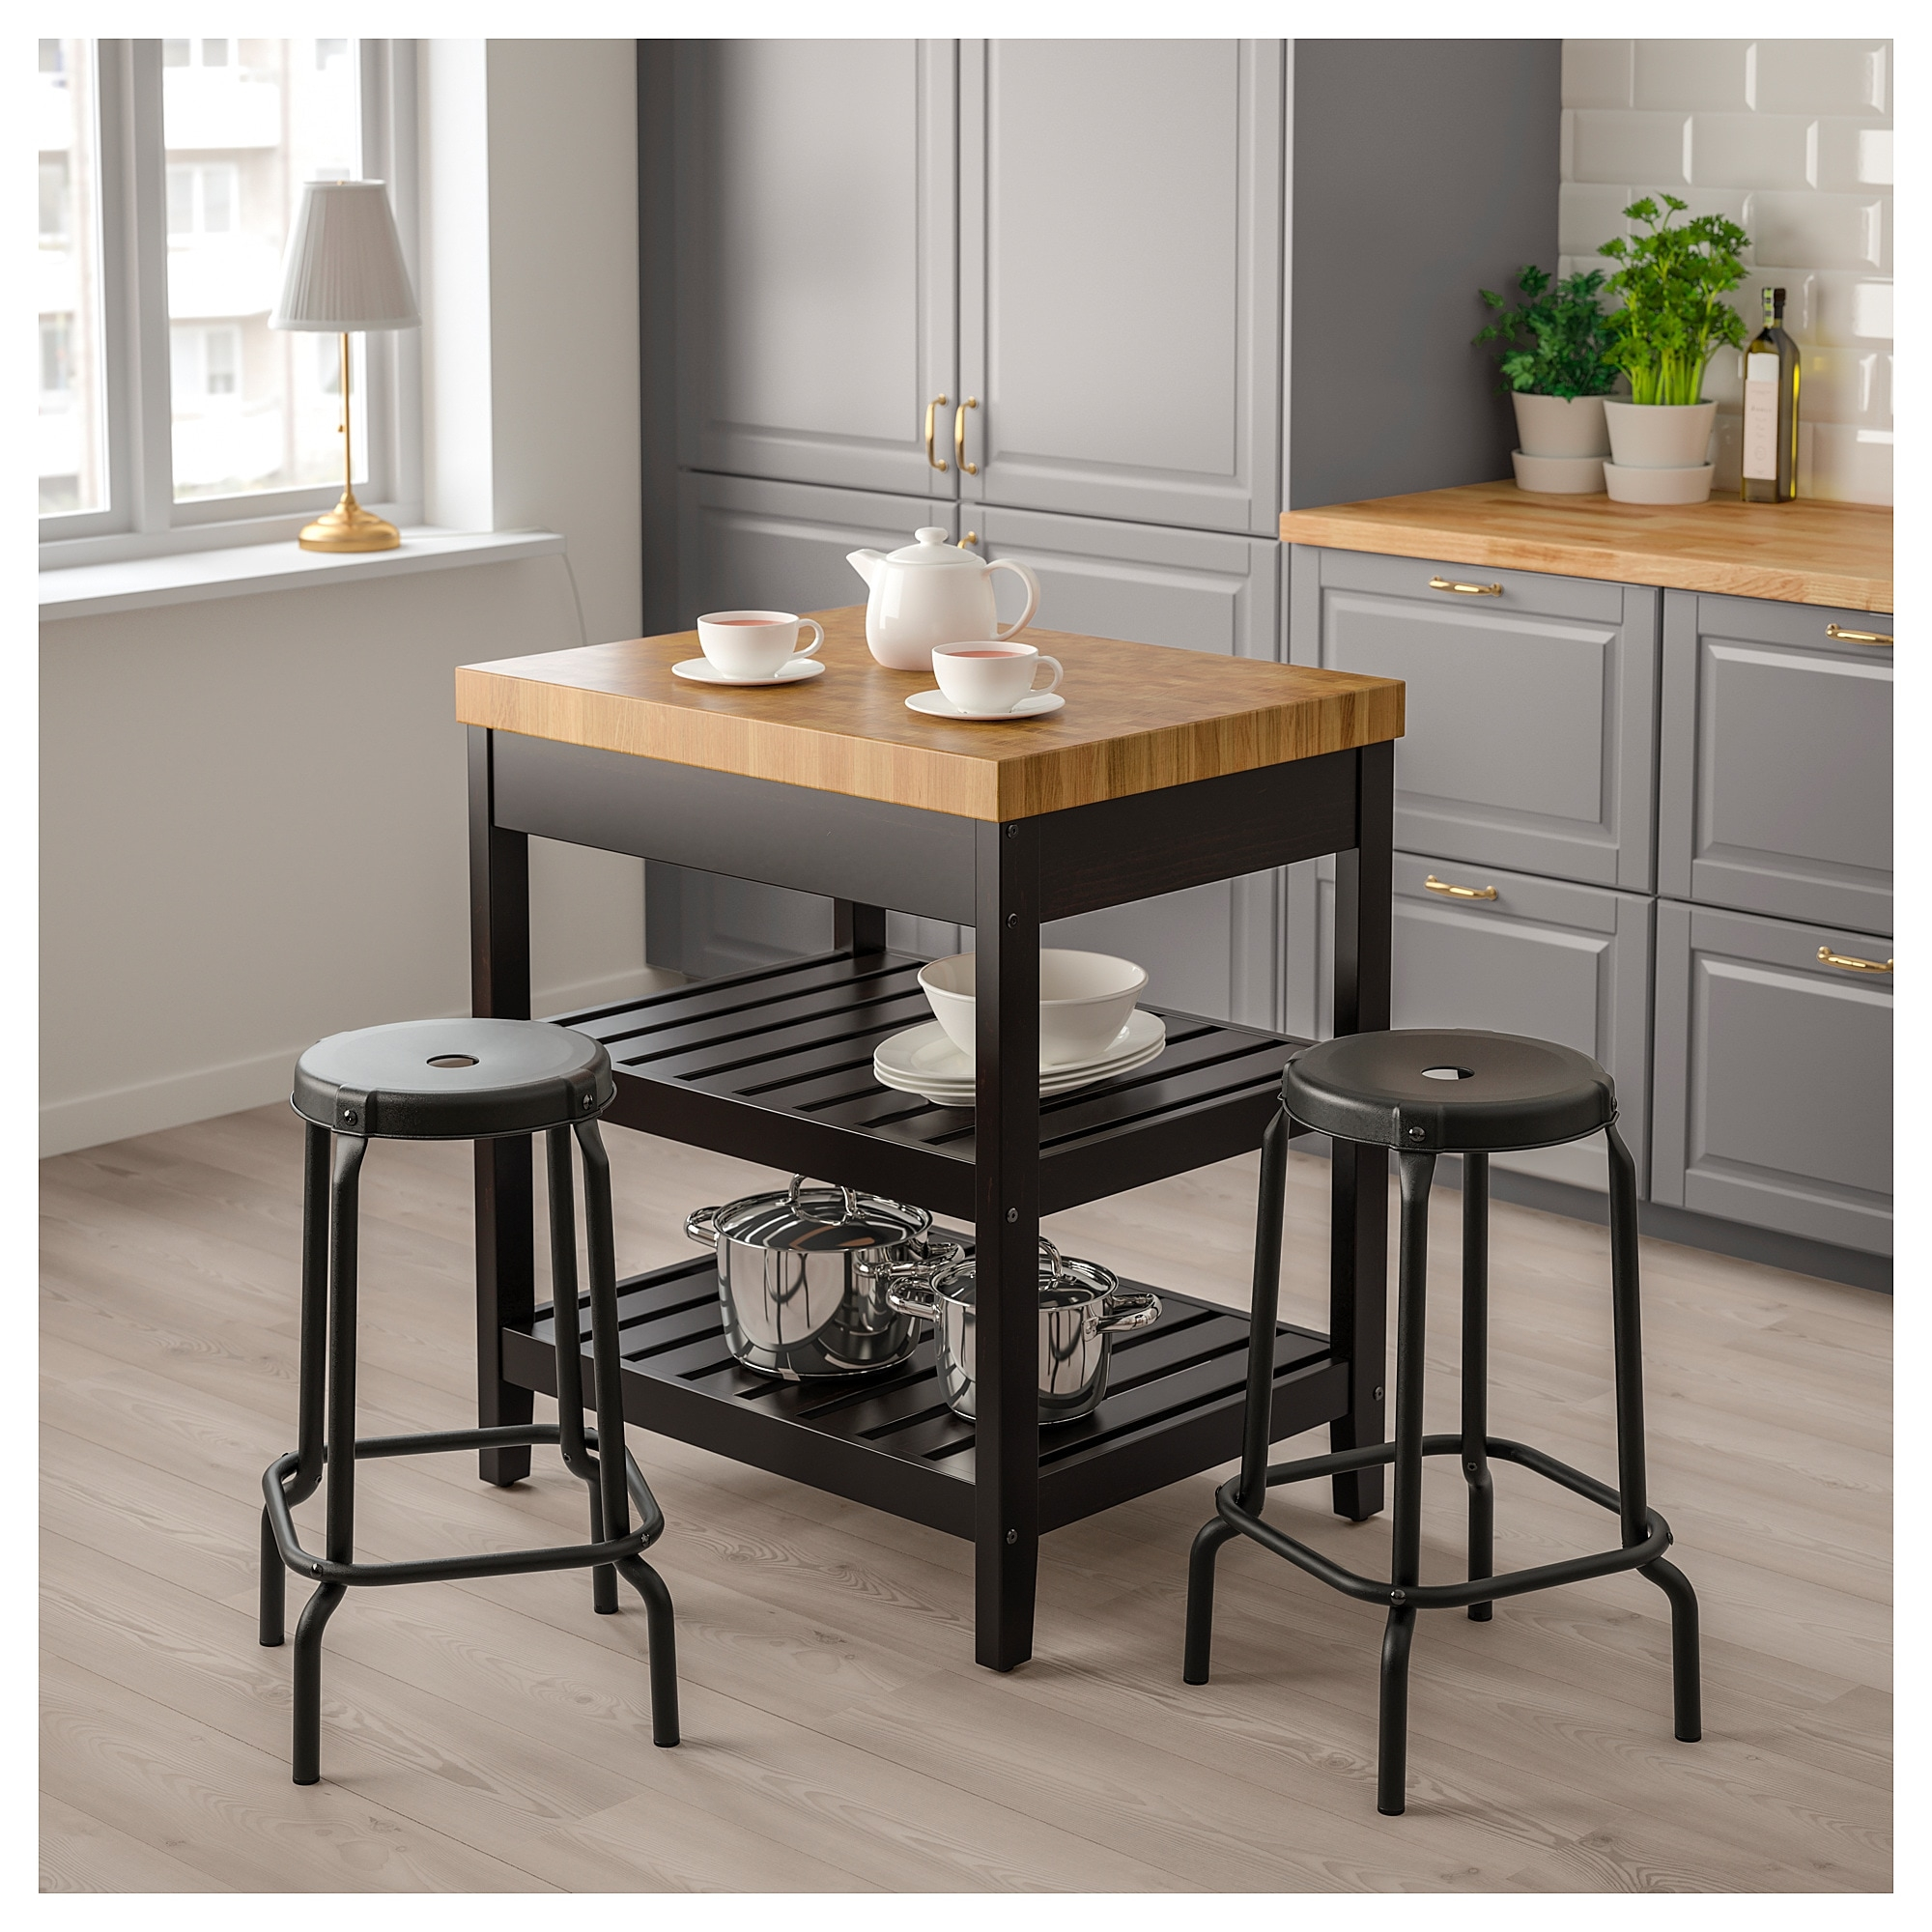 Ikea Ilot Cuisine: 50+ IKEA Kitchen Islands You'll Love In 2020